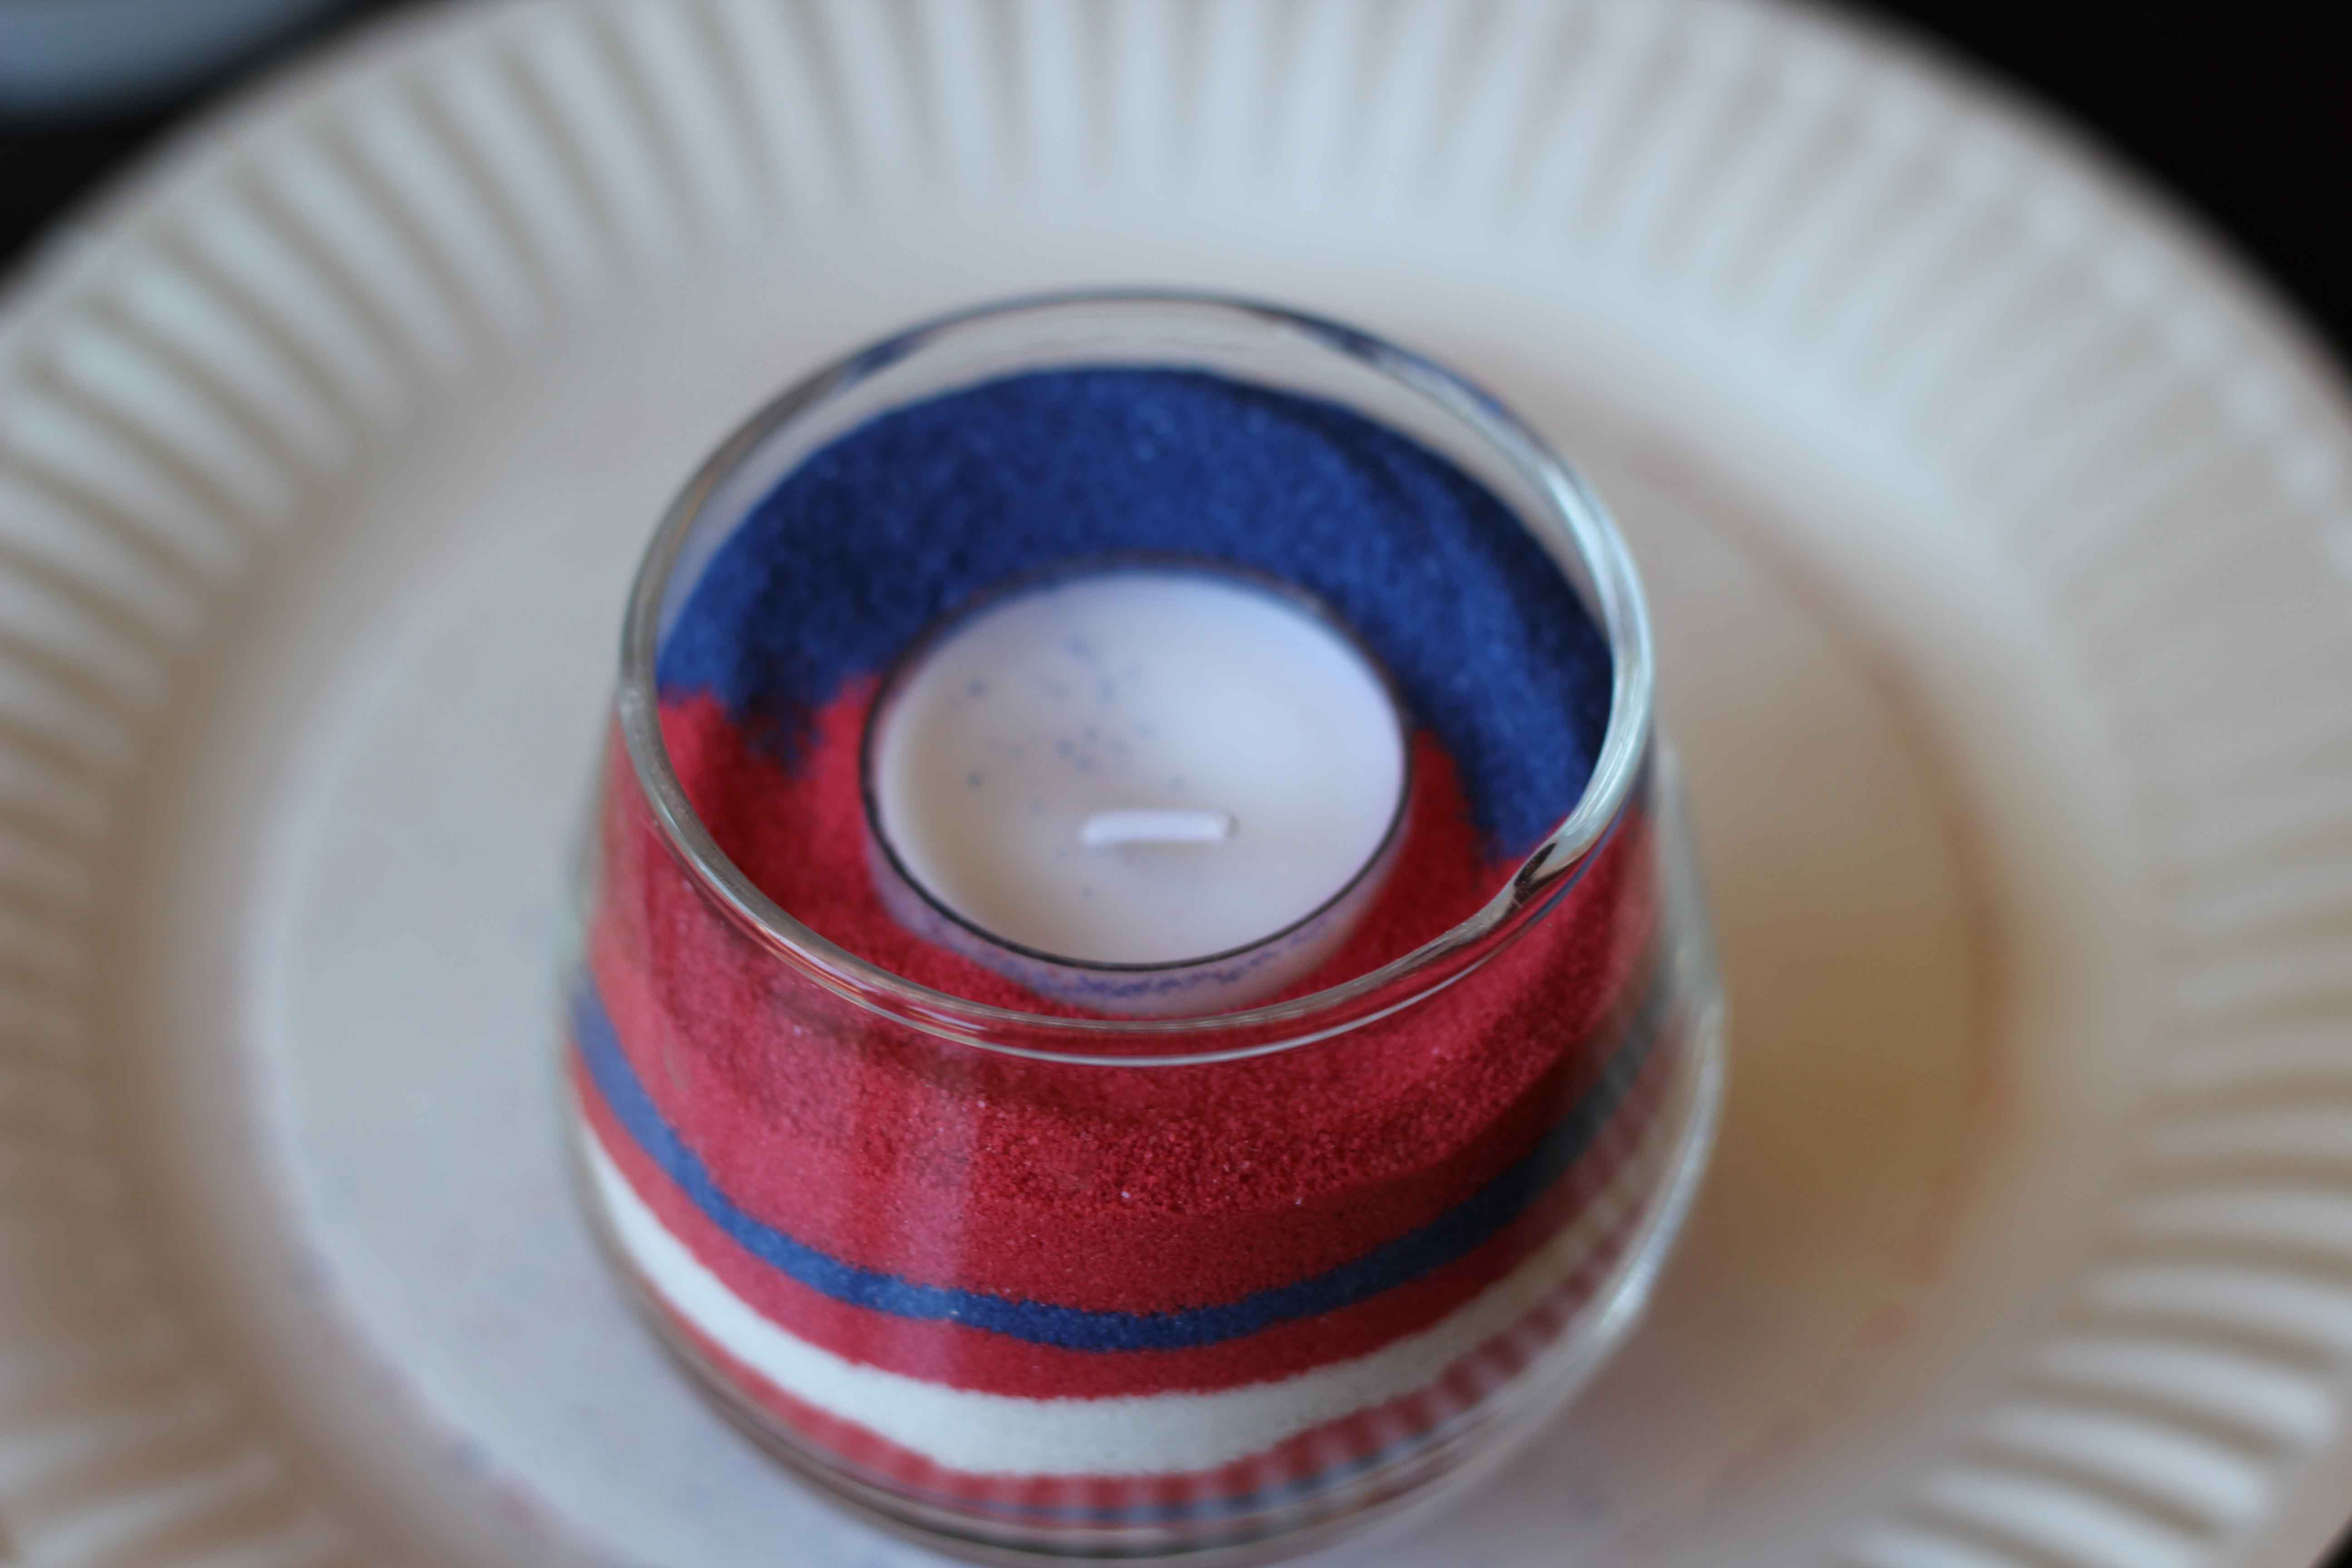 #DIY Sand Candles - I love these! I used drinking glasses and a votive I bought from a thrift store, added the #sand and a tea #candle. 30 minutes later I have 4 great candles for #4th of July. Made all four candles for $8 bucks! This pin was tested and reviewed by one of the 3 crazy sisters at https://www.thisgrandmaisfun.com/